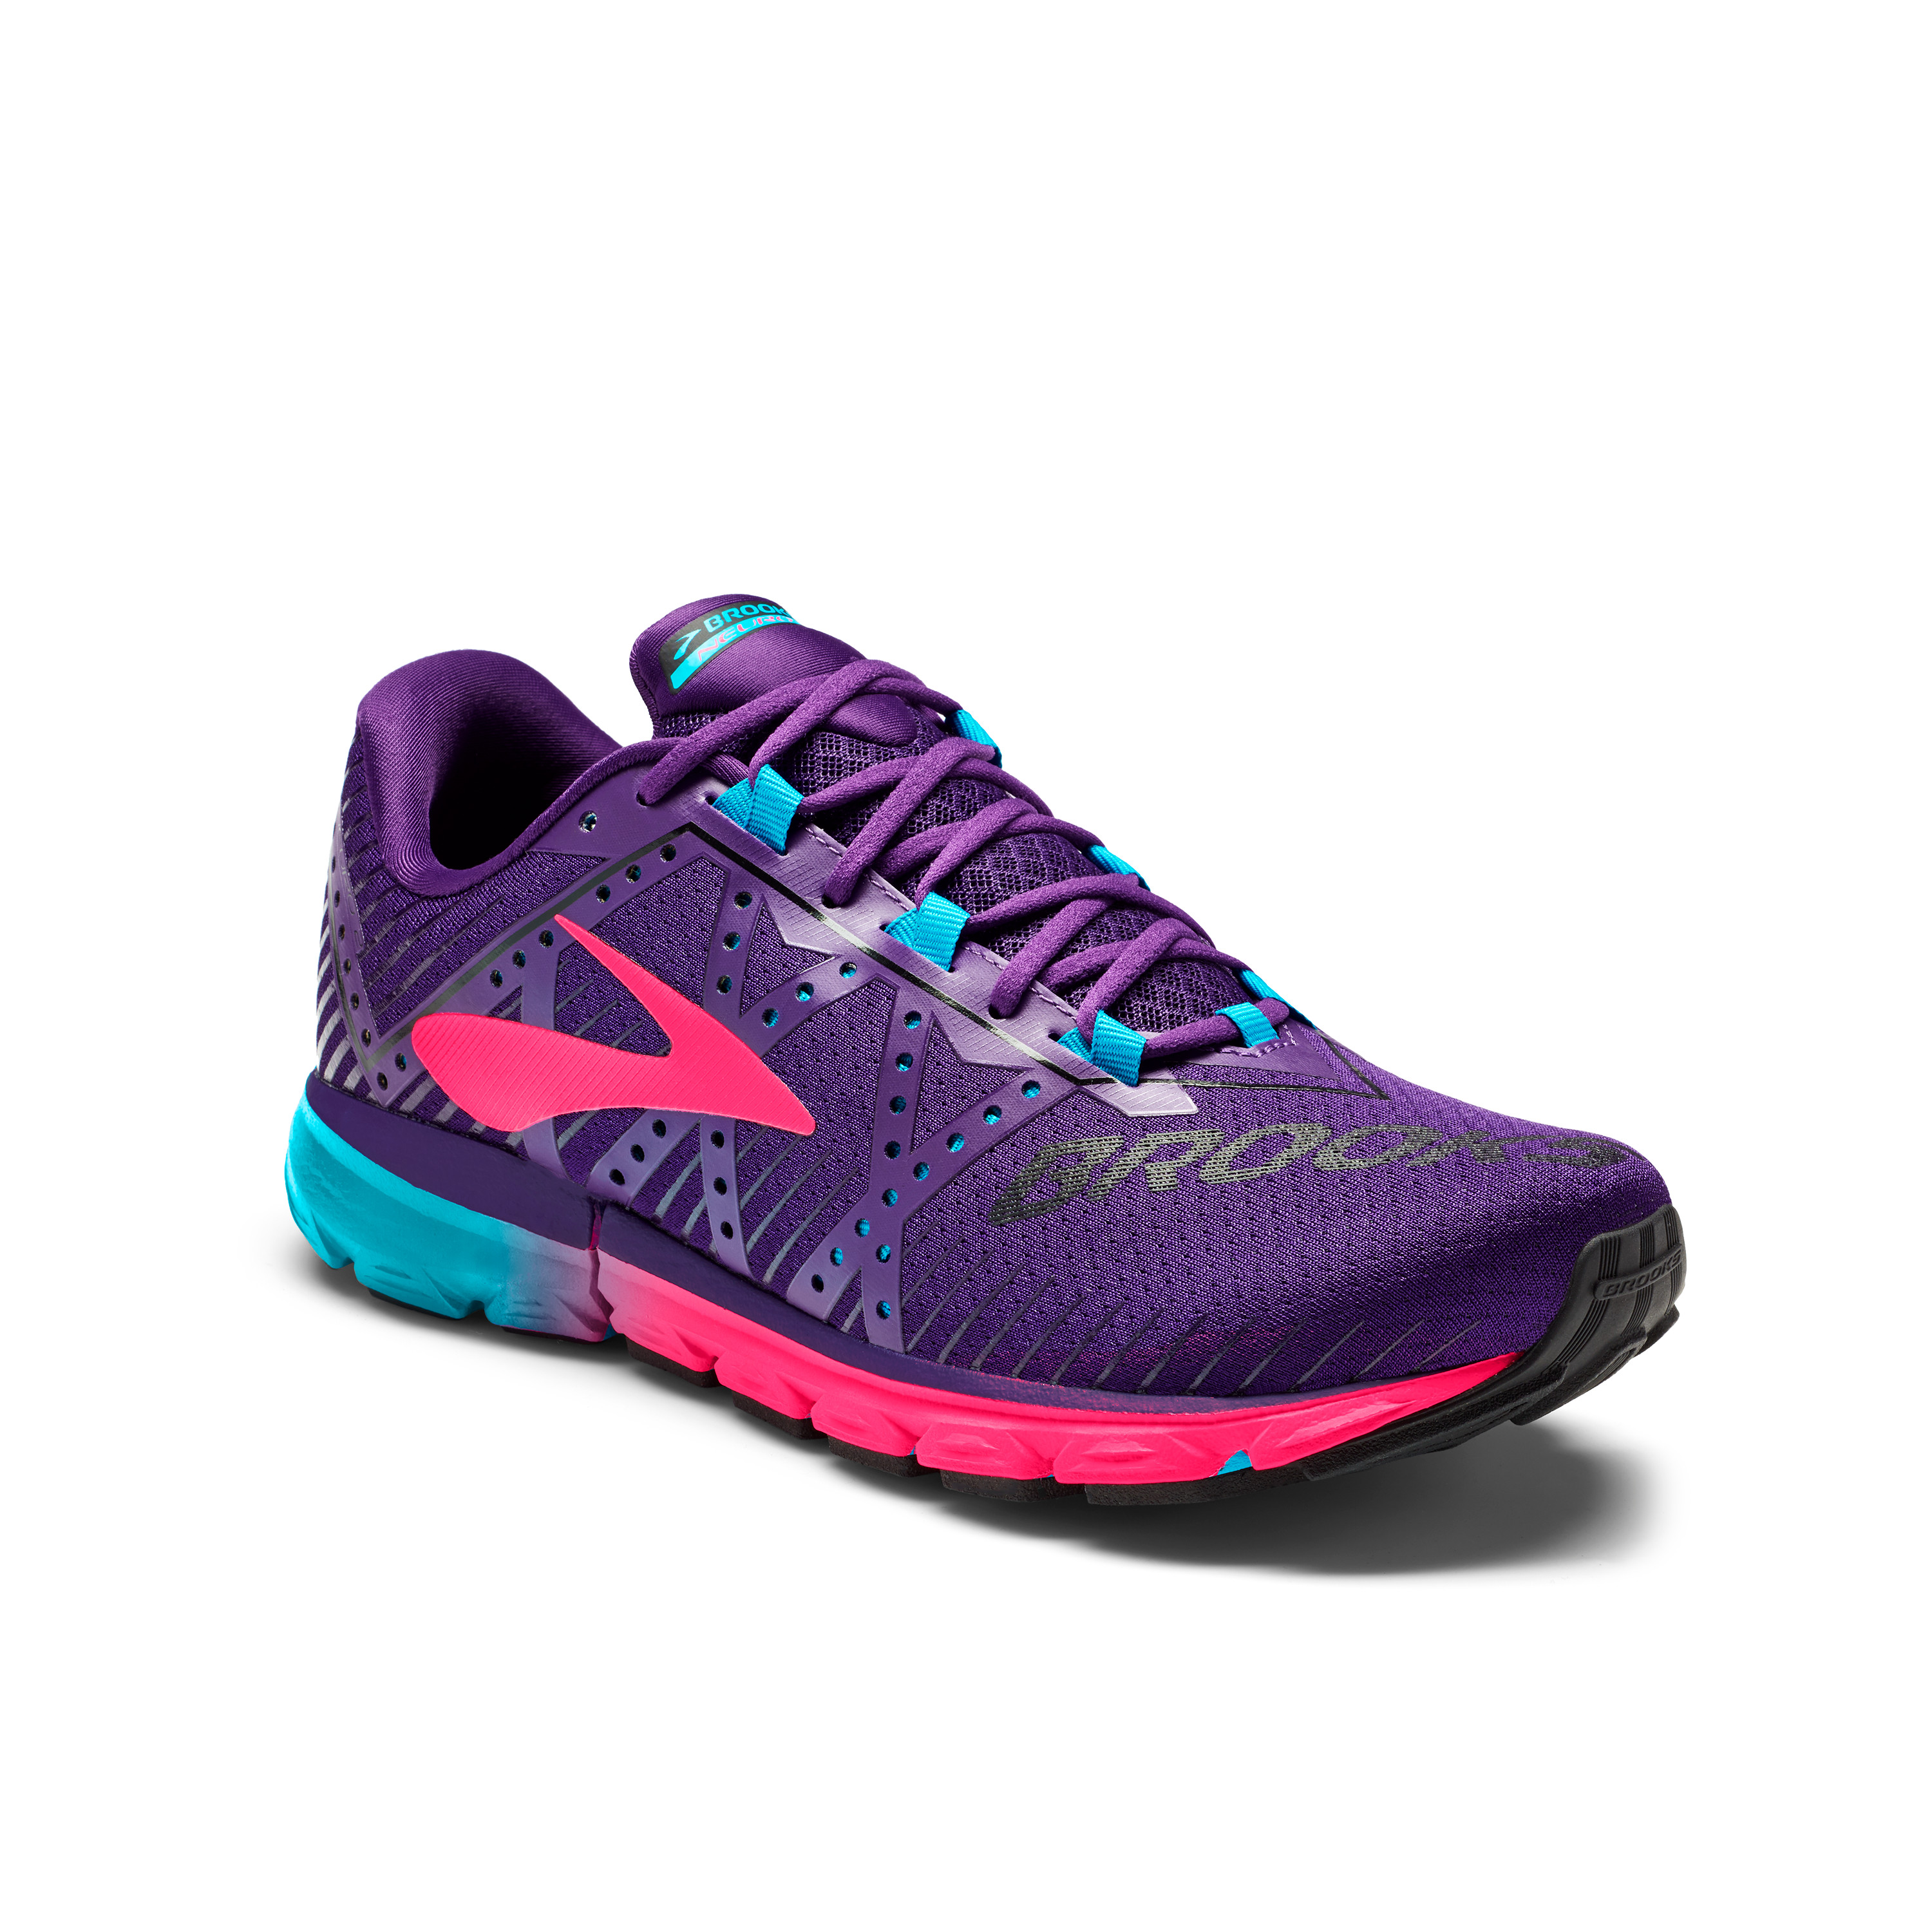 15c1d7f4355c4 Brooks Neuro 2 Women s Running Shoes - Alton Sports